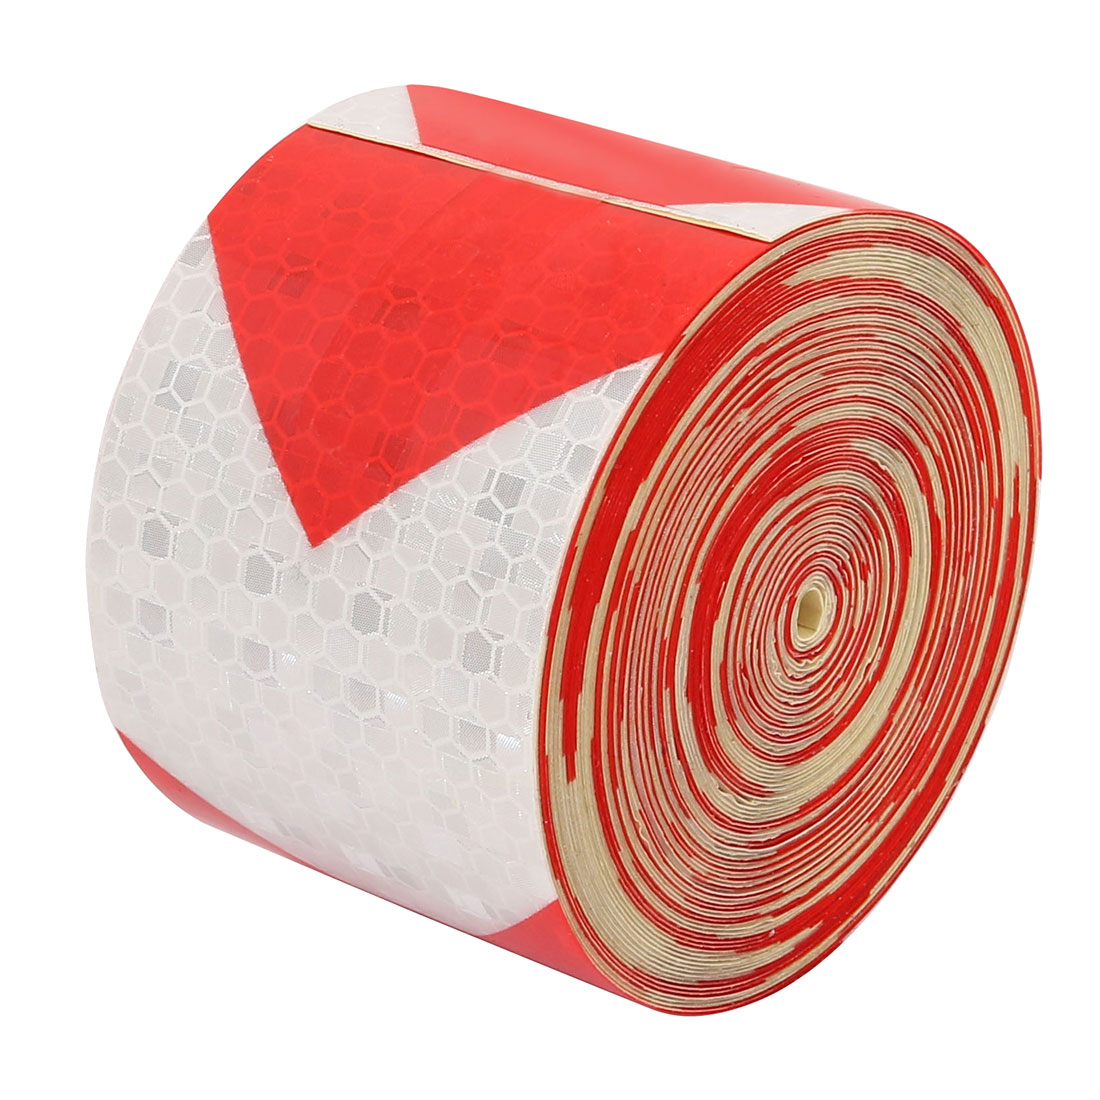 Single Side Adhesive Reflective Warning Tape Tilt 10M Long 5cm Wide Red White